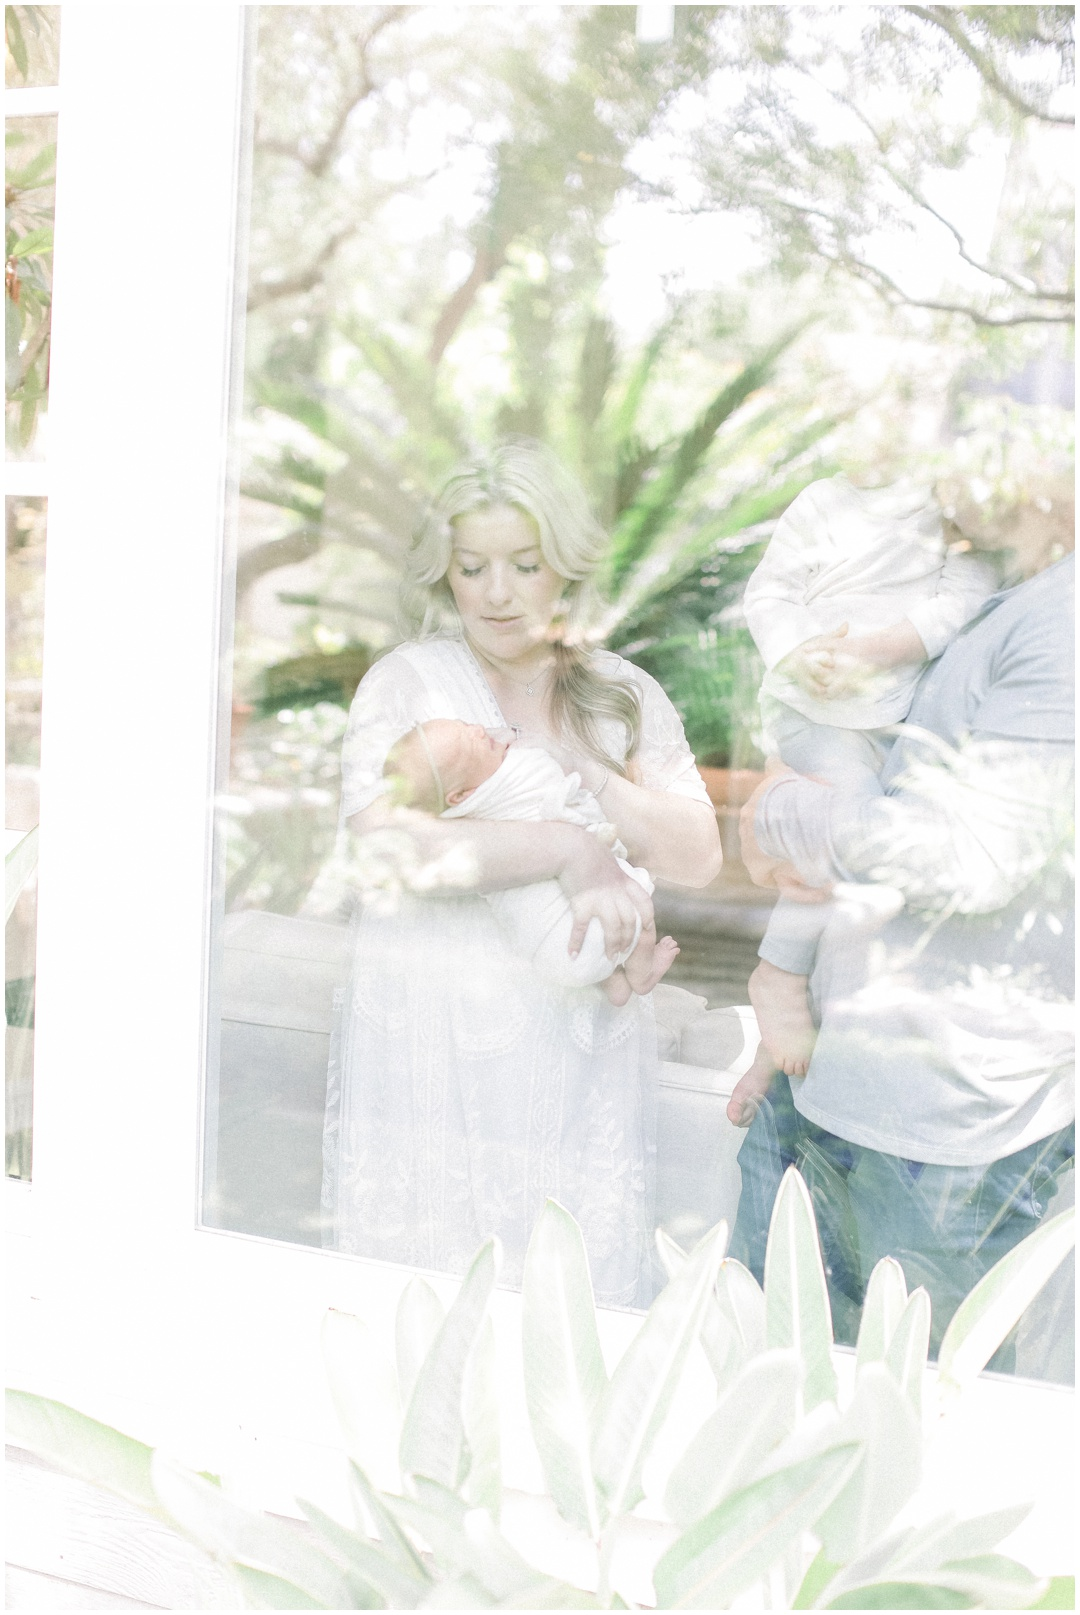 Newport_Beach_Newborn_Light_Airy_Natural_Photographer_Newport_Beach_Photographer_Orange_County_Family_Photographer_Cori_Kleckner_Photography_Newport_Beach_Photographer_newborn_kole_calhoun56_kole_calhoun_Jennifer_Calhoun_Knox_Calhoun_3803.jpg